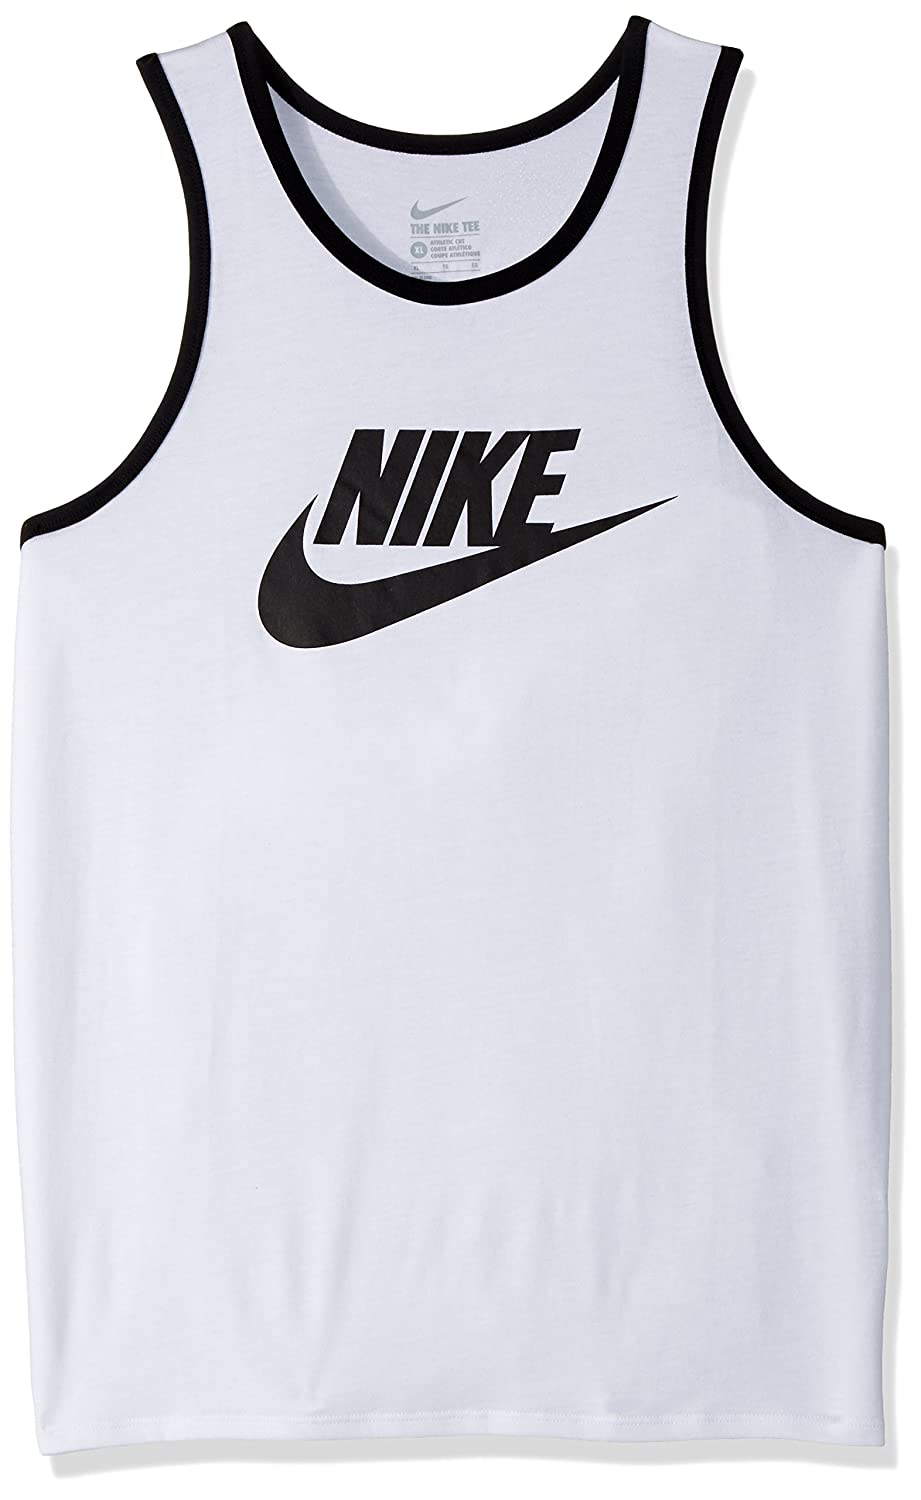 nike tank top the rock pain and gain, NIKE Sweatshirt Weiß